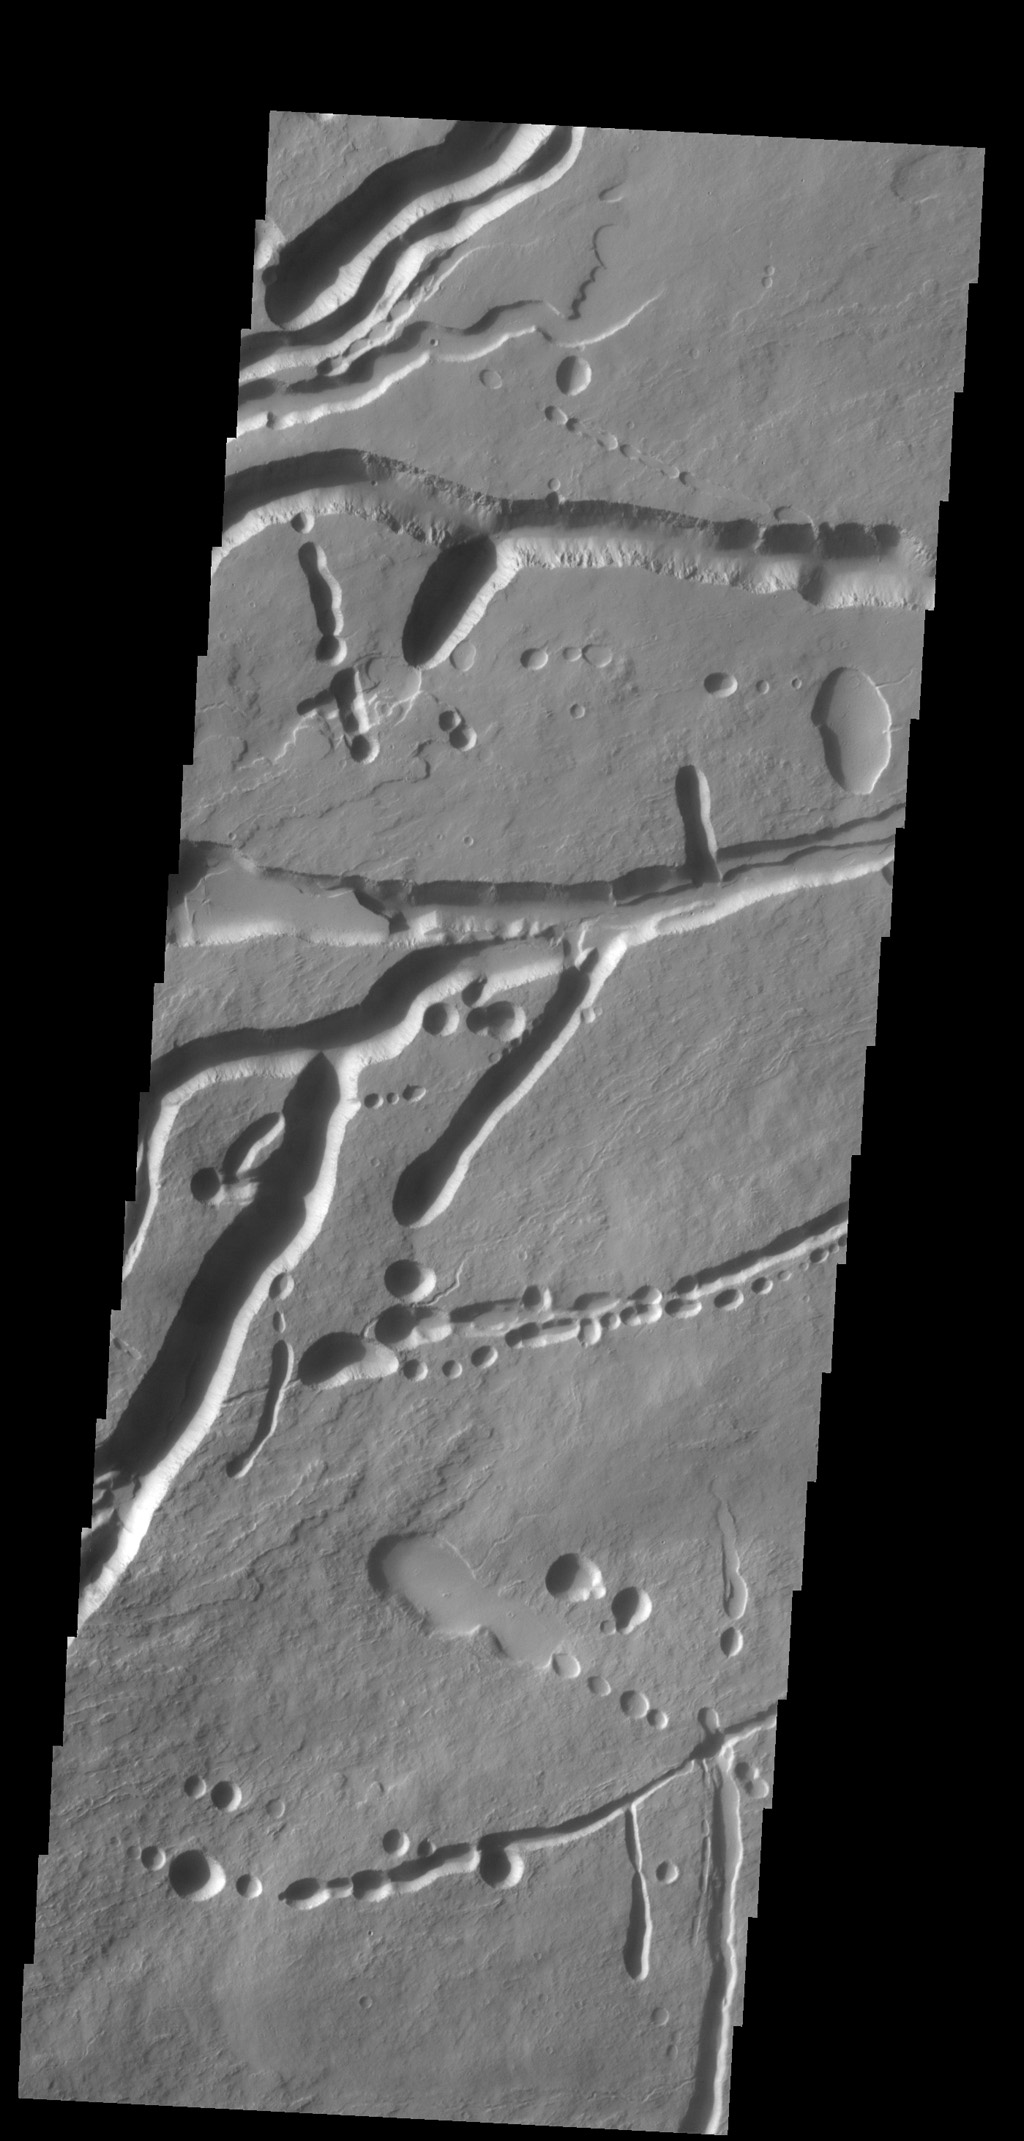 The pits, fractures and channel-like features captured by NASA's 2001 Mars Odyssey spacecraft are located on the northern flank of Ascraeus Mons. Most of these features were created by collapse into lava tubes that existed below the surface.